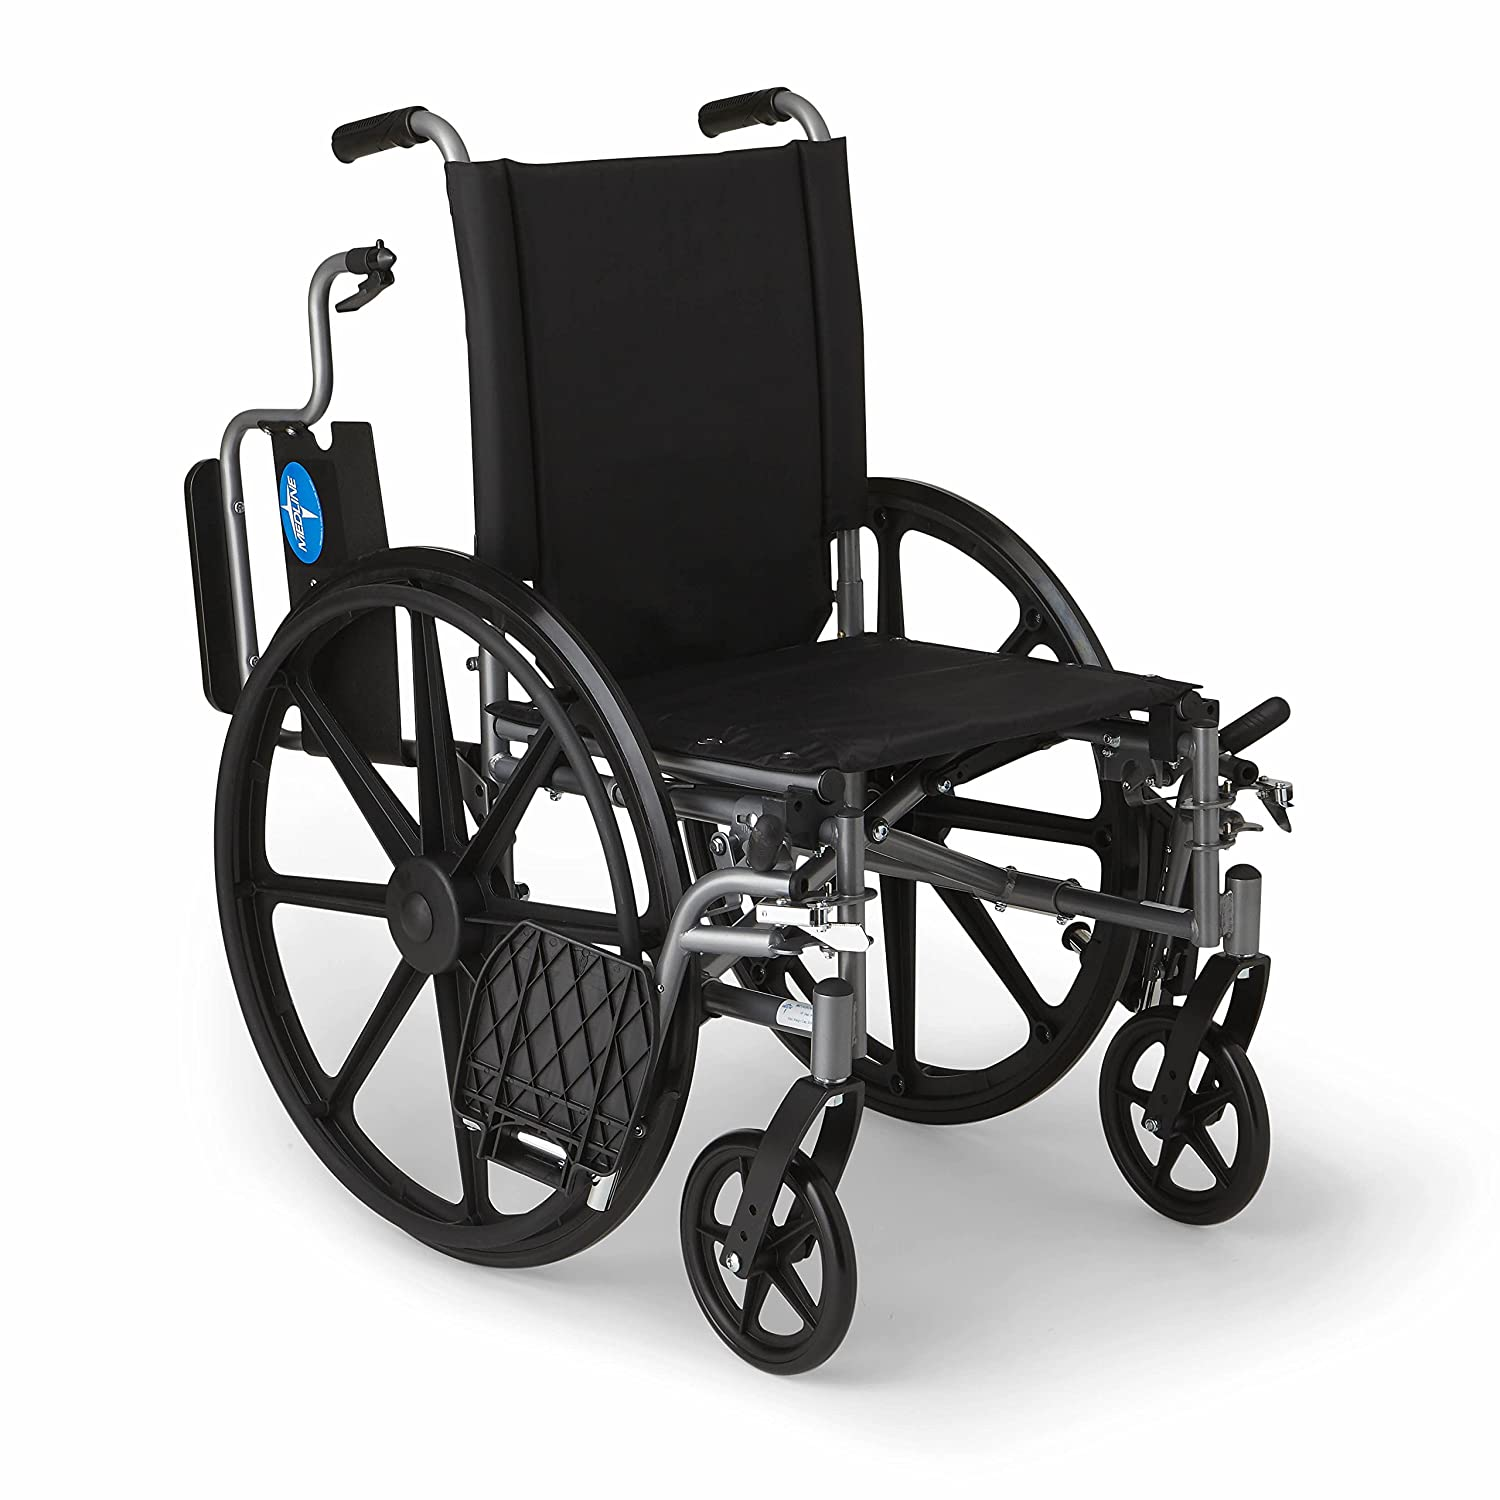 Amazon Medline Lightweight and User Friendly Wheelchair with